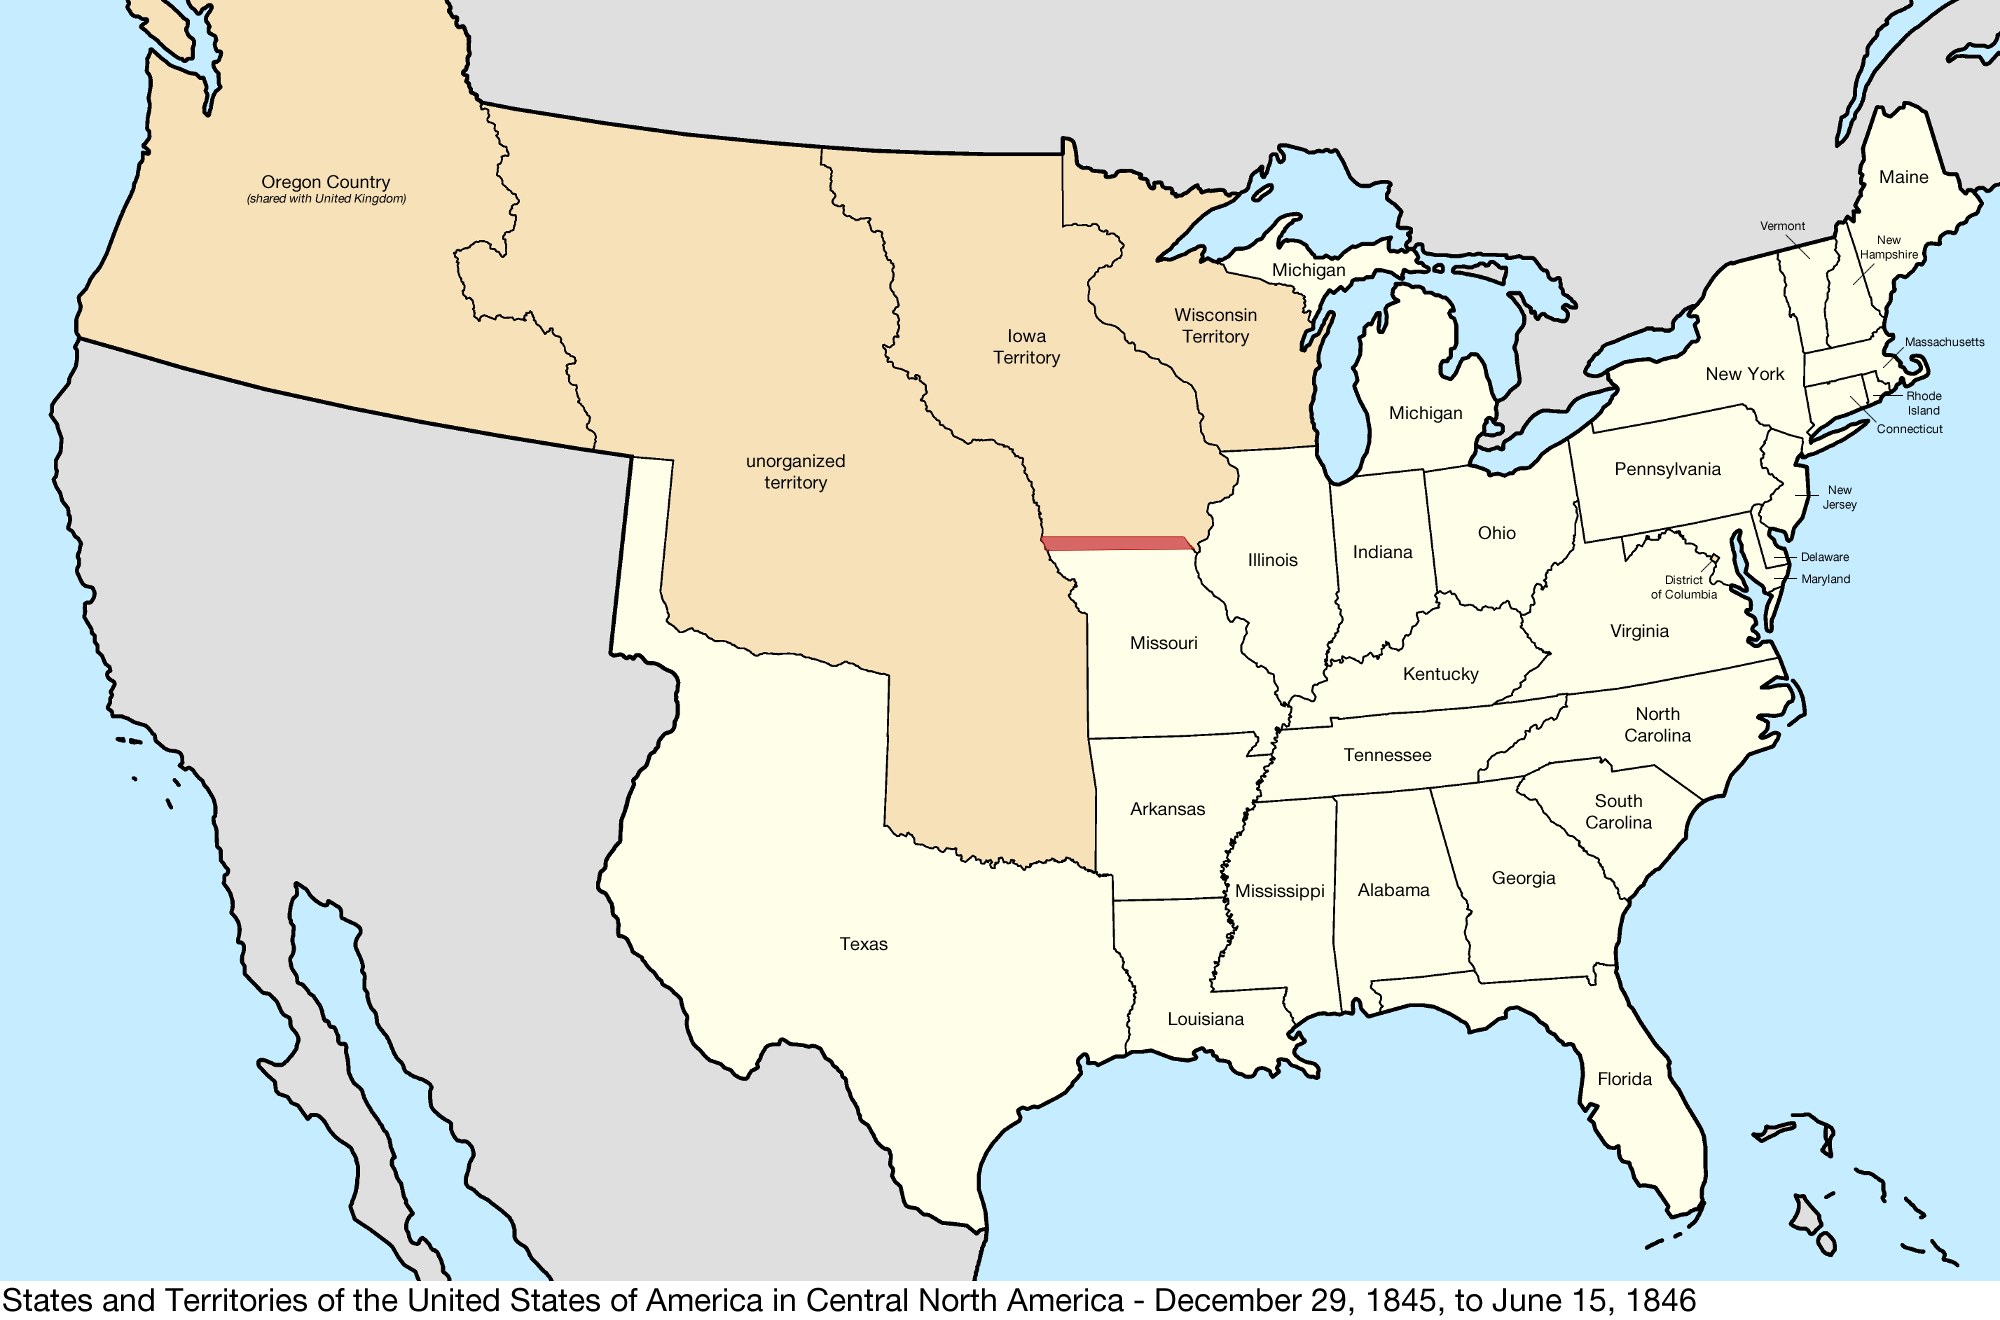 Map Of Us In 1846 File:United States Central map 1845 12 29 to 1846 06 15.png